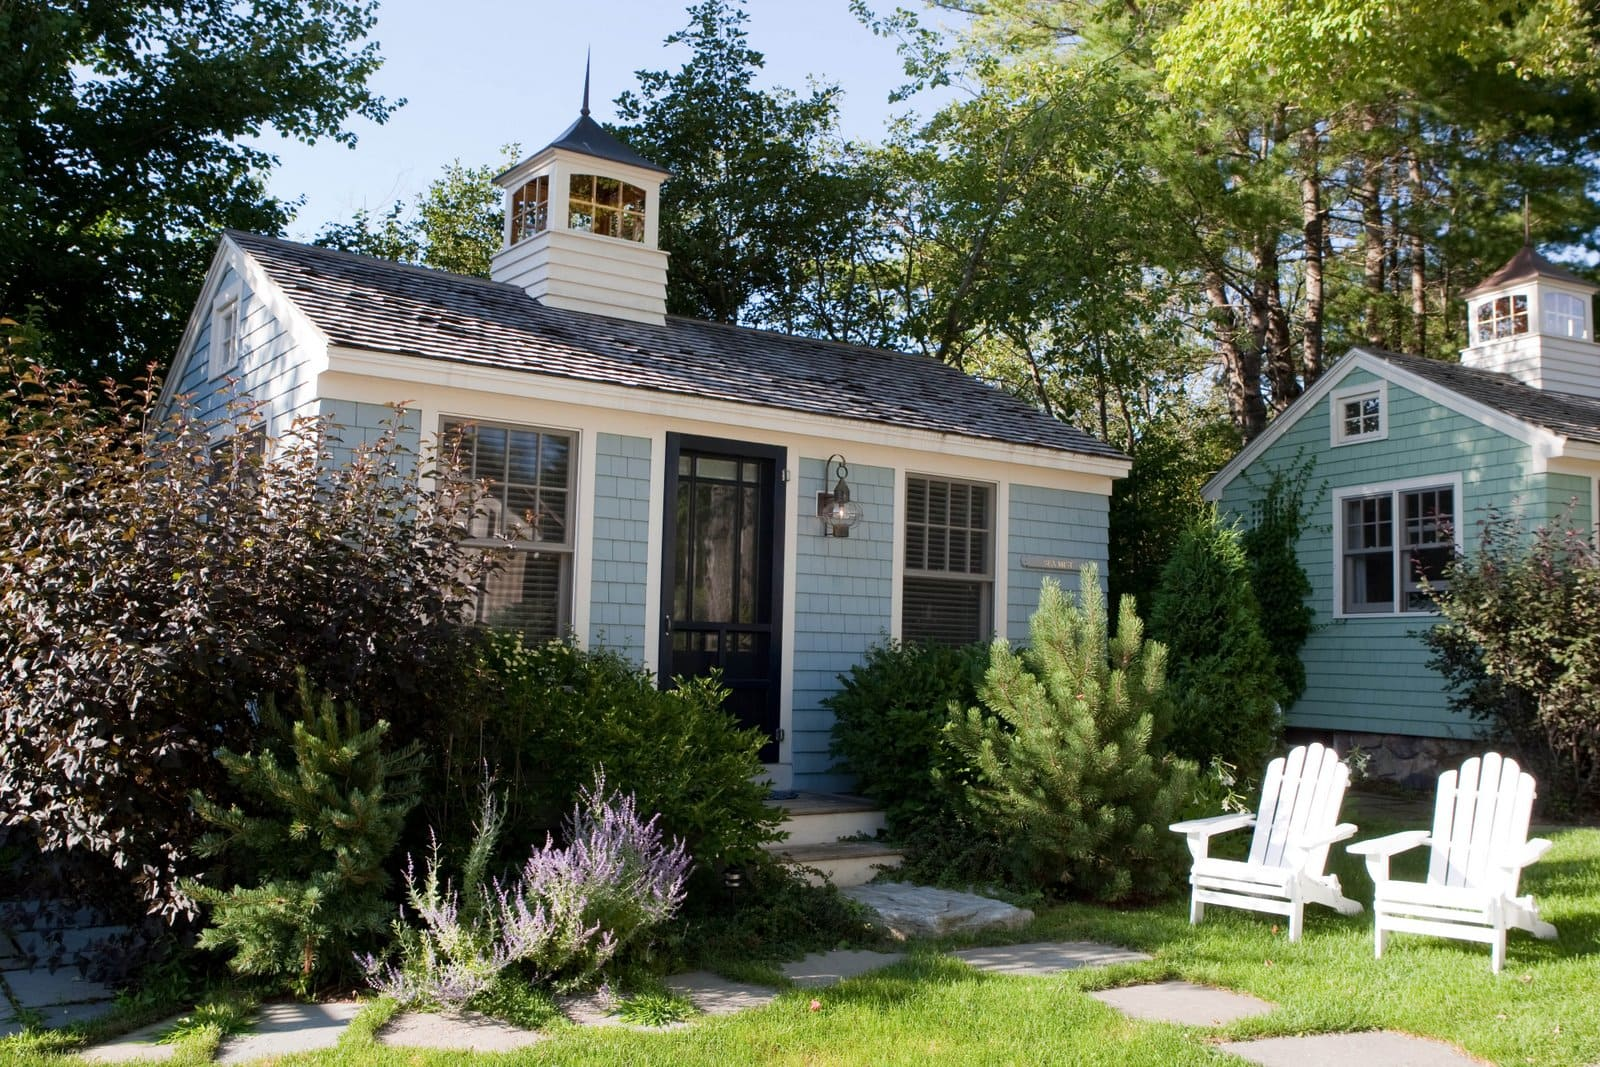 The Best Places To Play And Relax In Kennebunkport, Maine